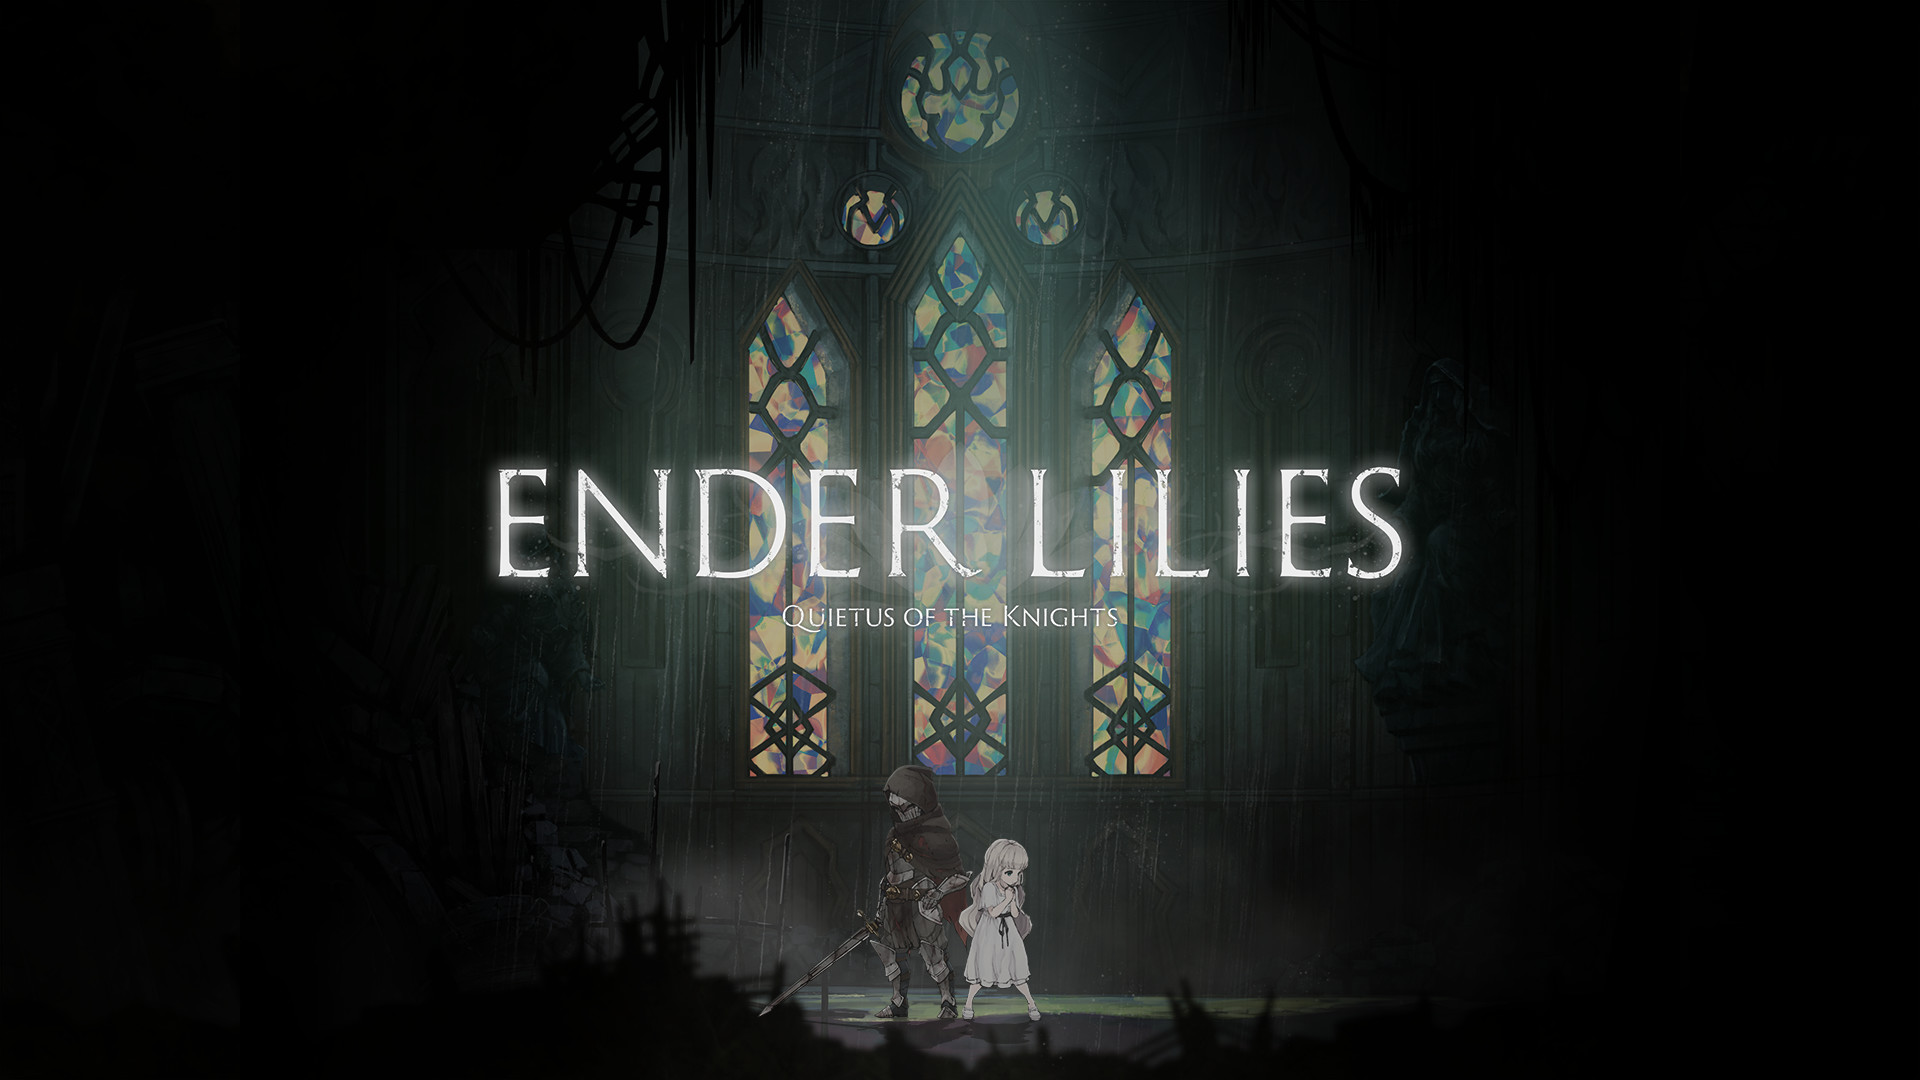 X35 Earthwalker - Ender Lilies: Quietus of the Knights